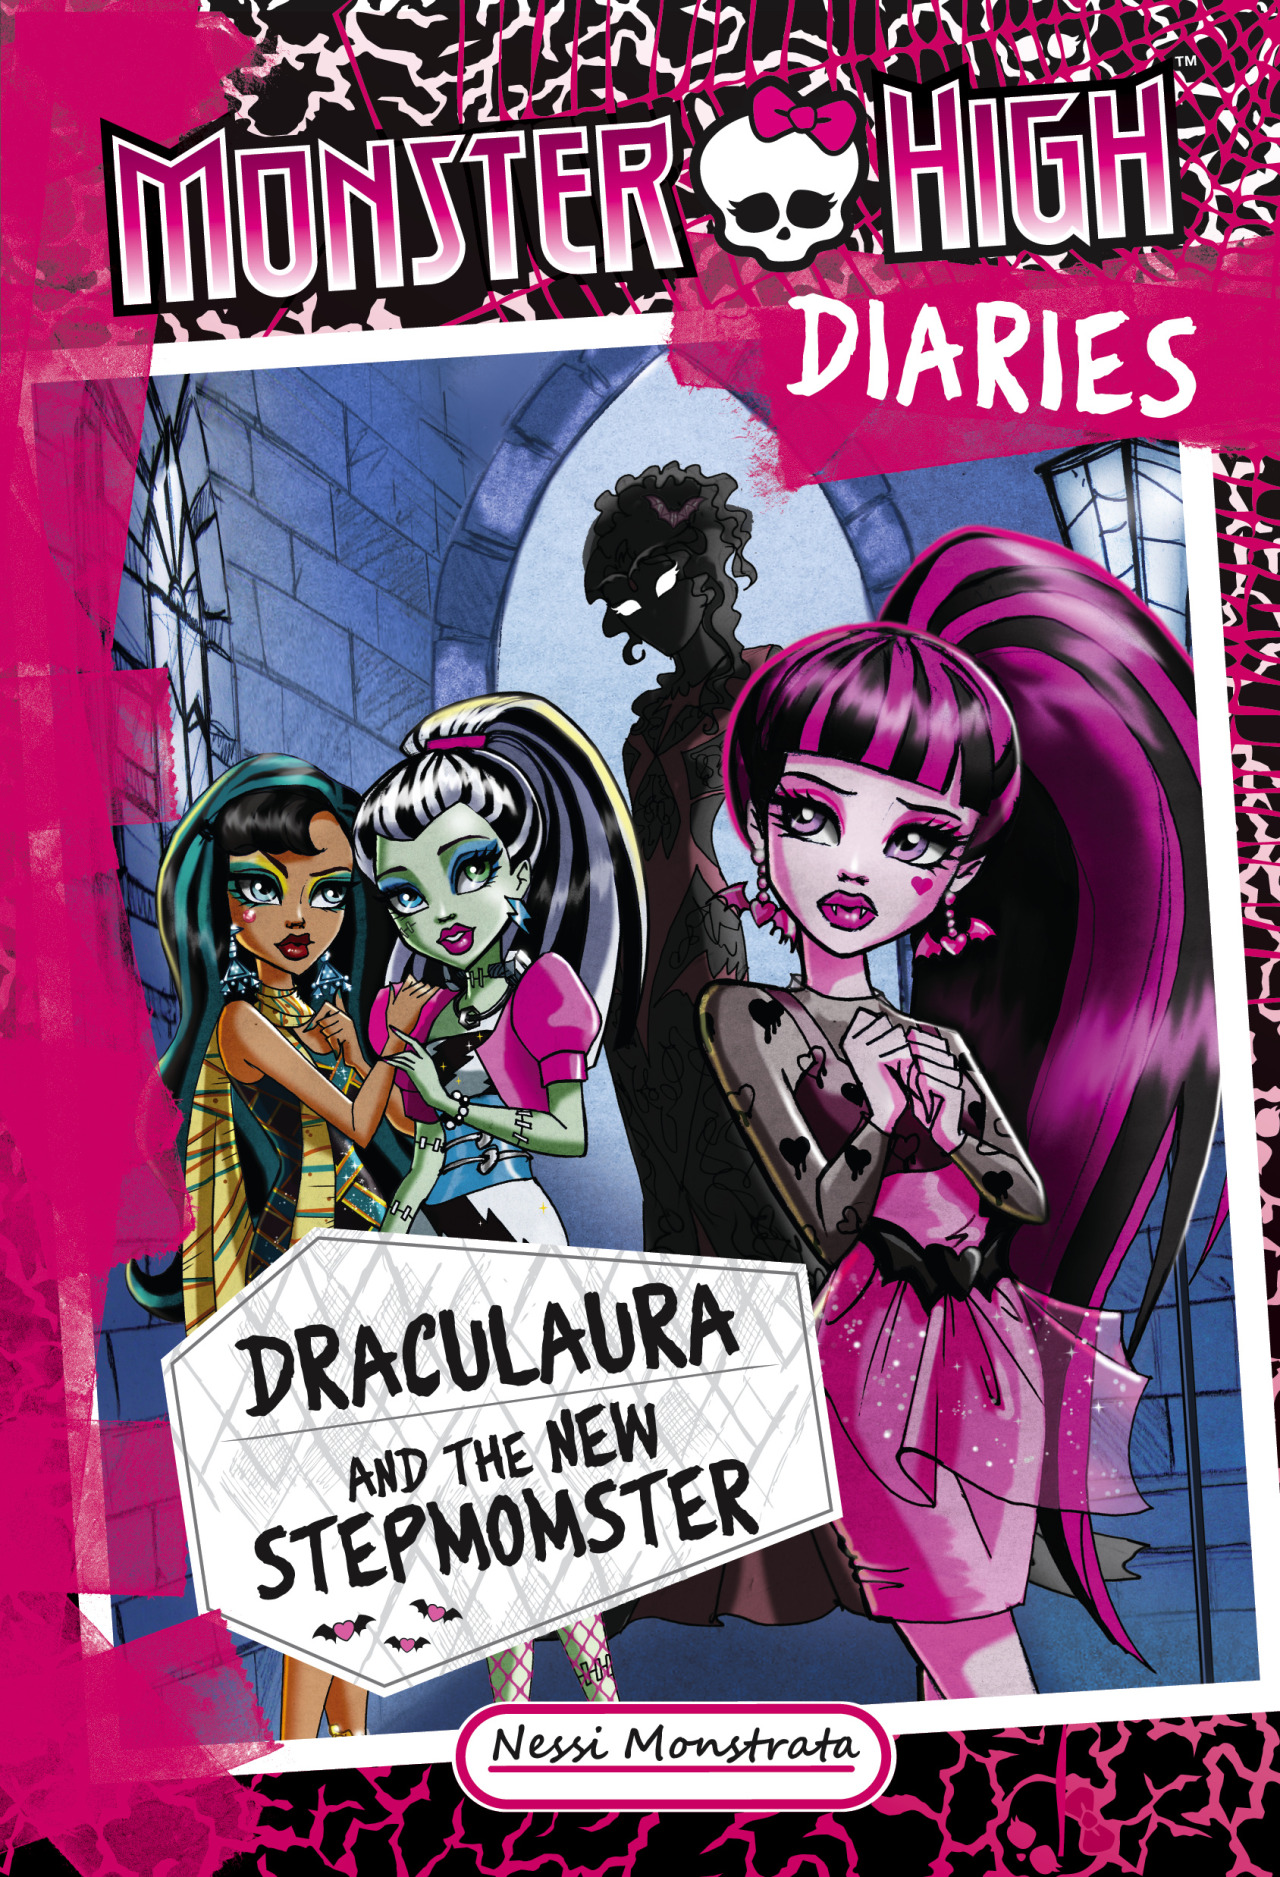 Libros Monster High Darth Alinart S Monster High Diaries Draculaura And The